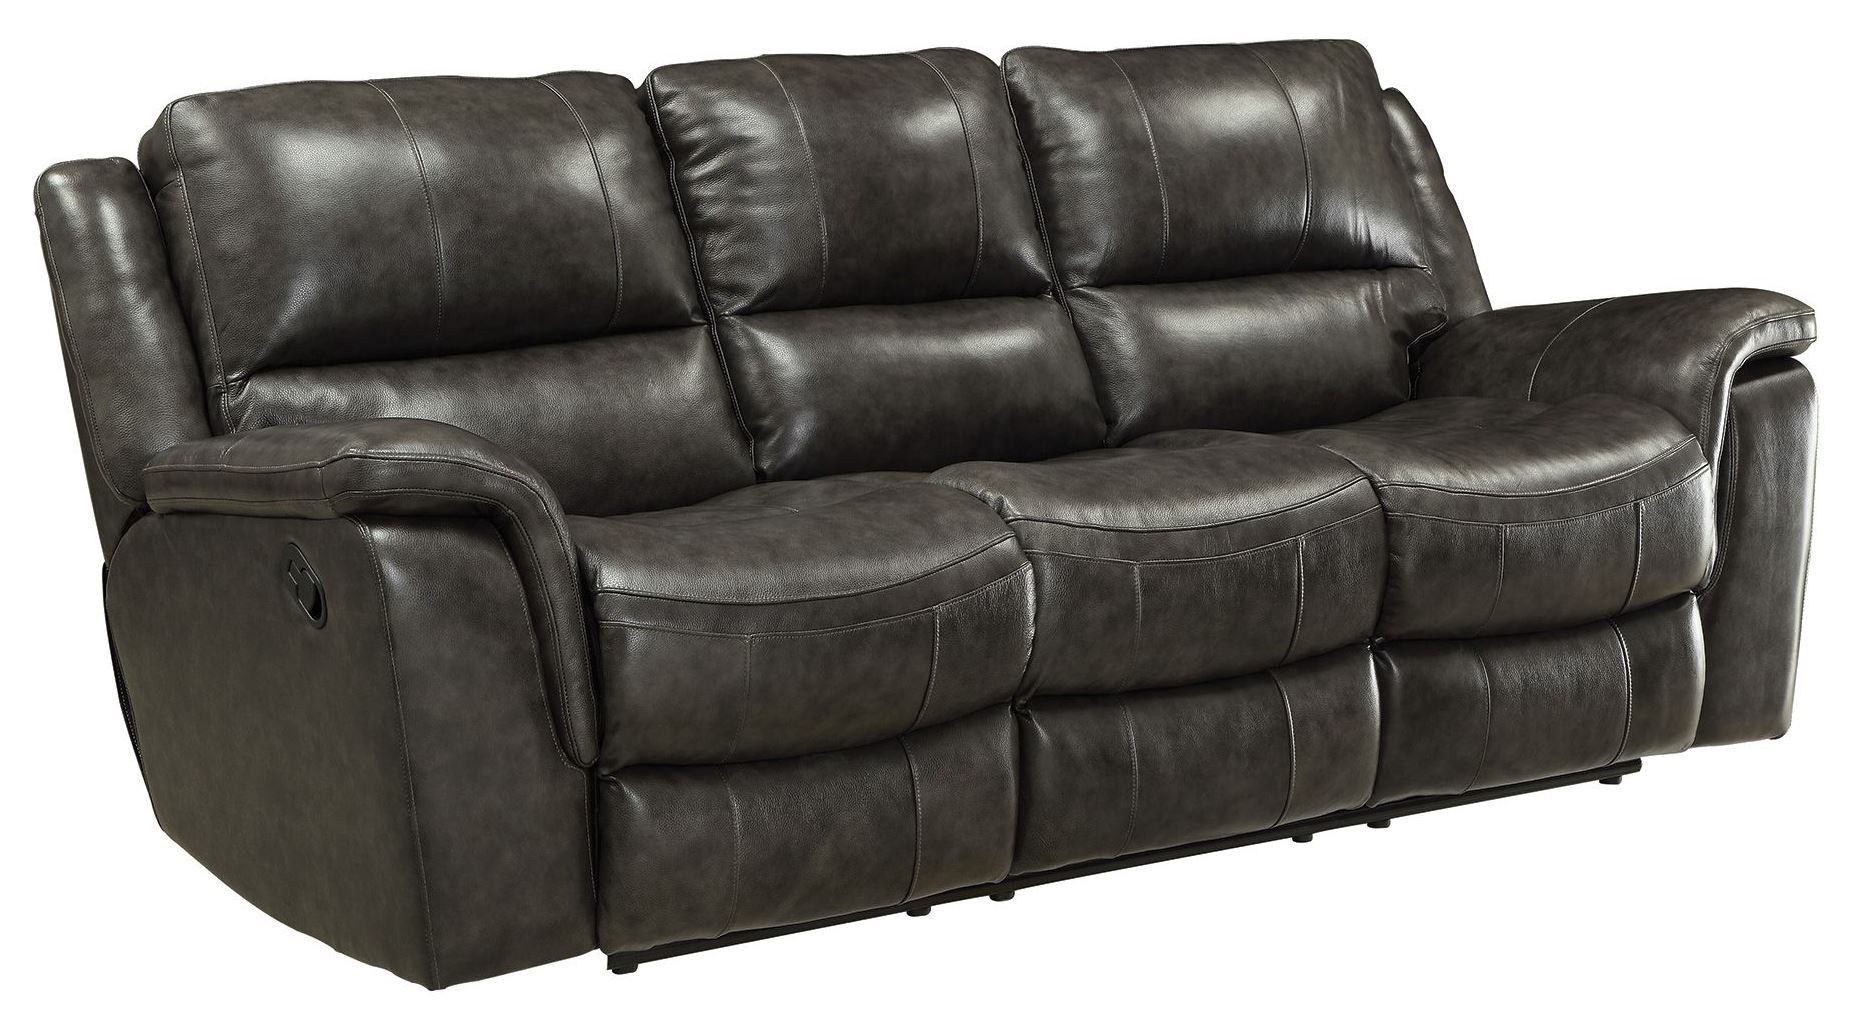 Wingfield charcoal reclining sofa from coaster 601821 for Charcoal sofa